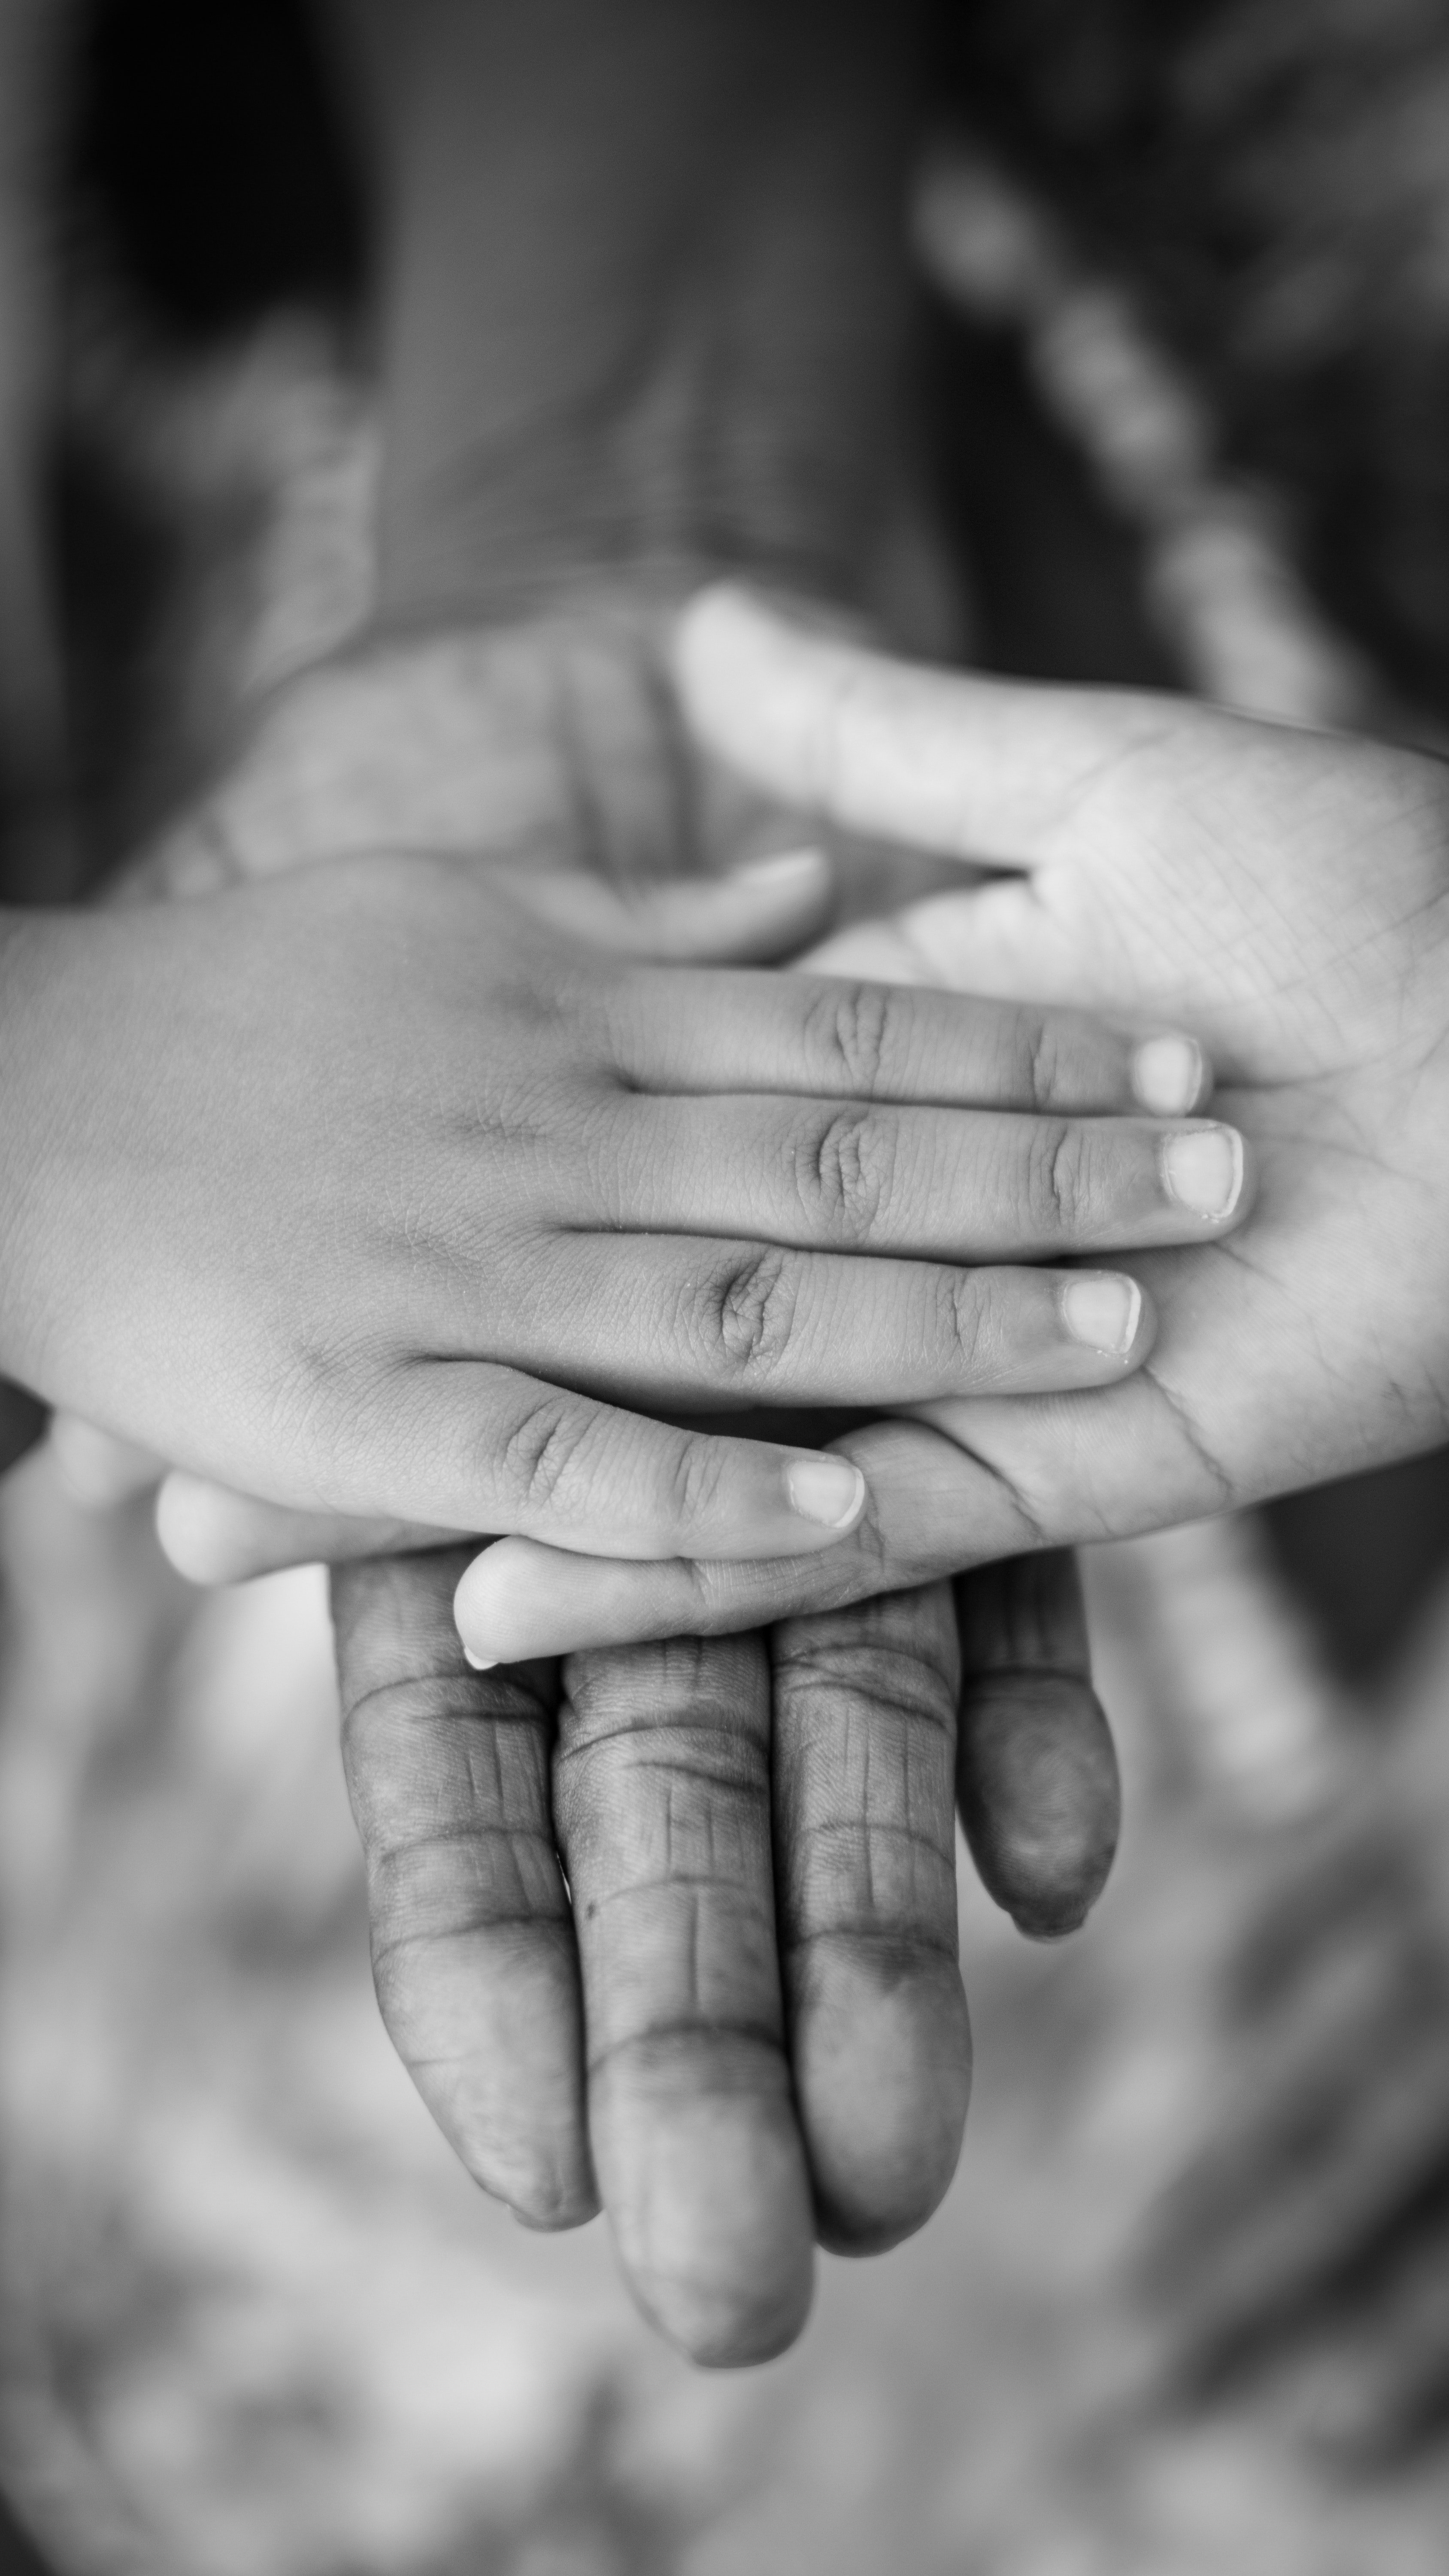 A child's hand on top of adult hands | Pexels